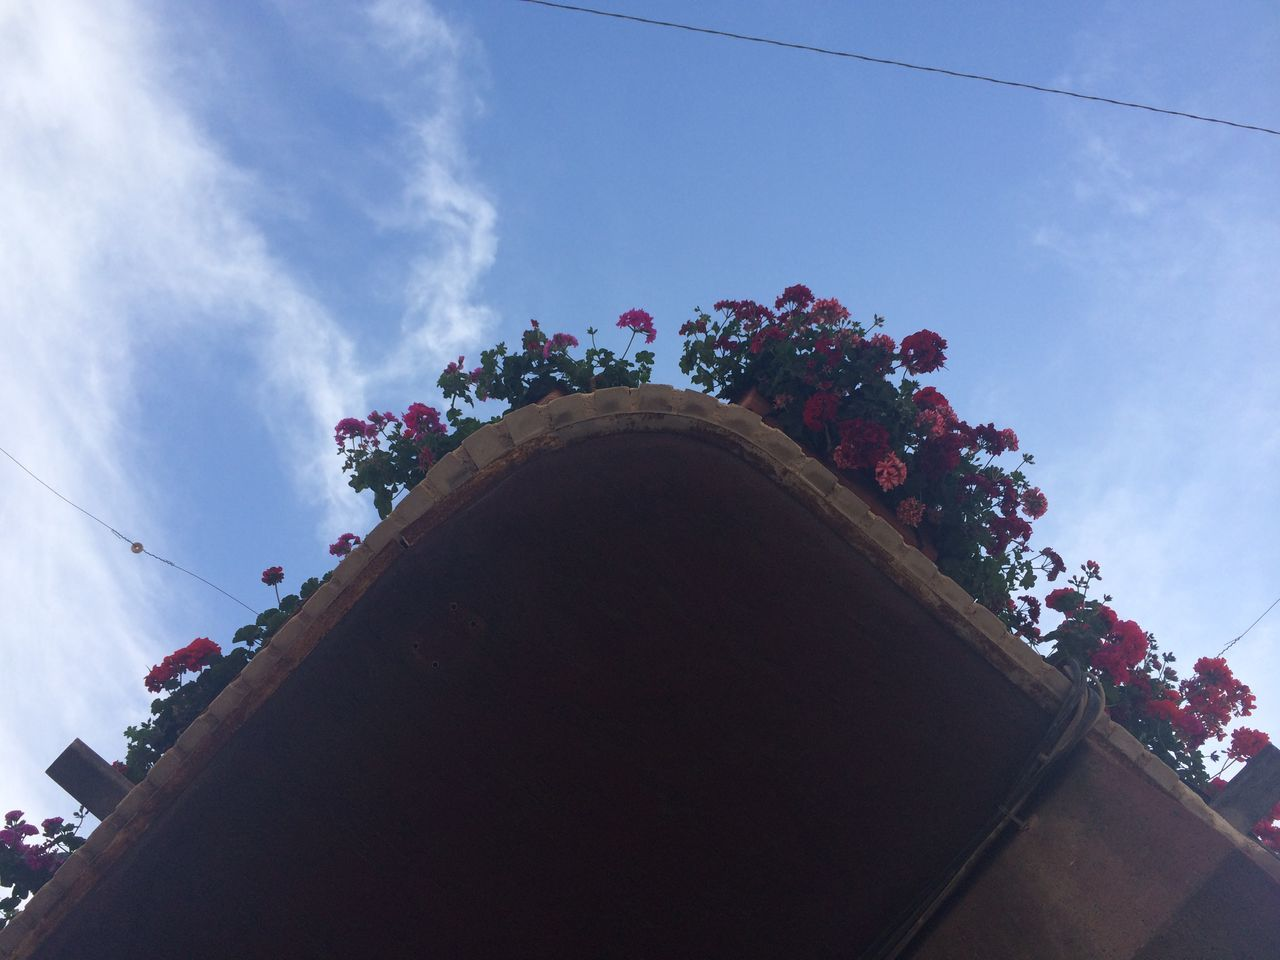 low angle view, sky, day, outdoors, cloud - sky, no people, flower, multi colored, nature, architecture, building exterior